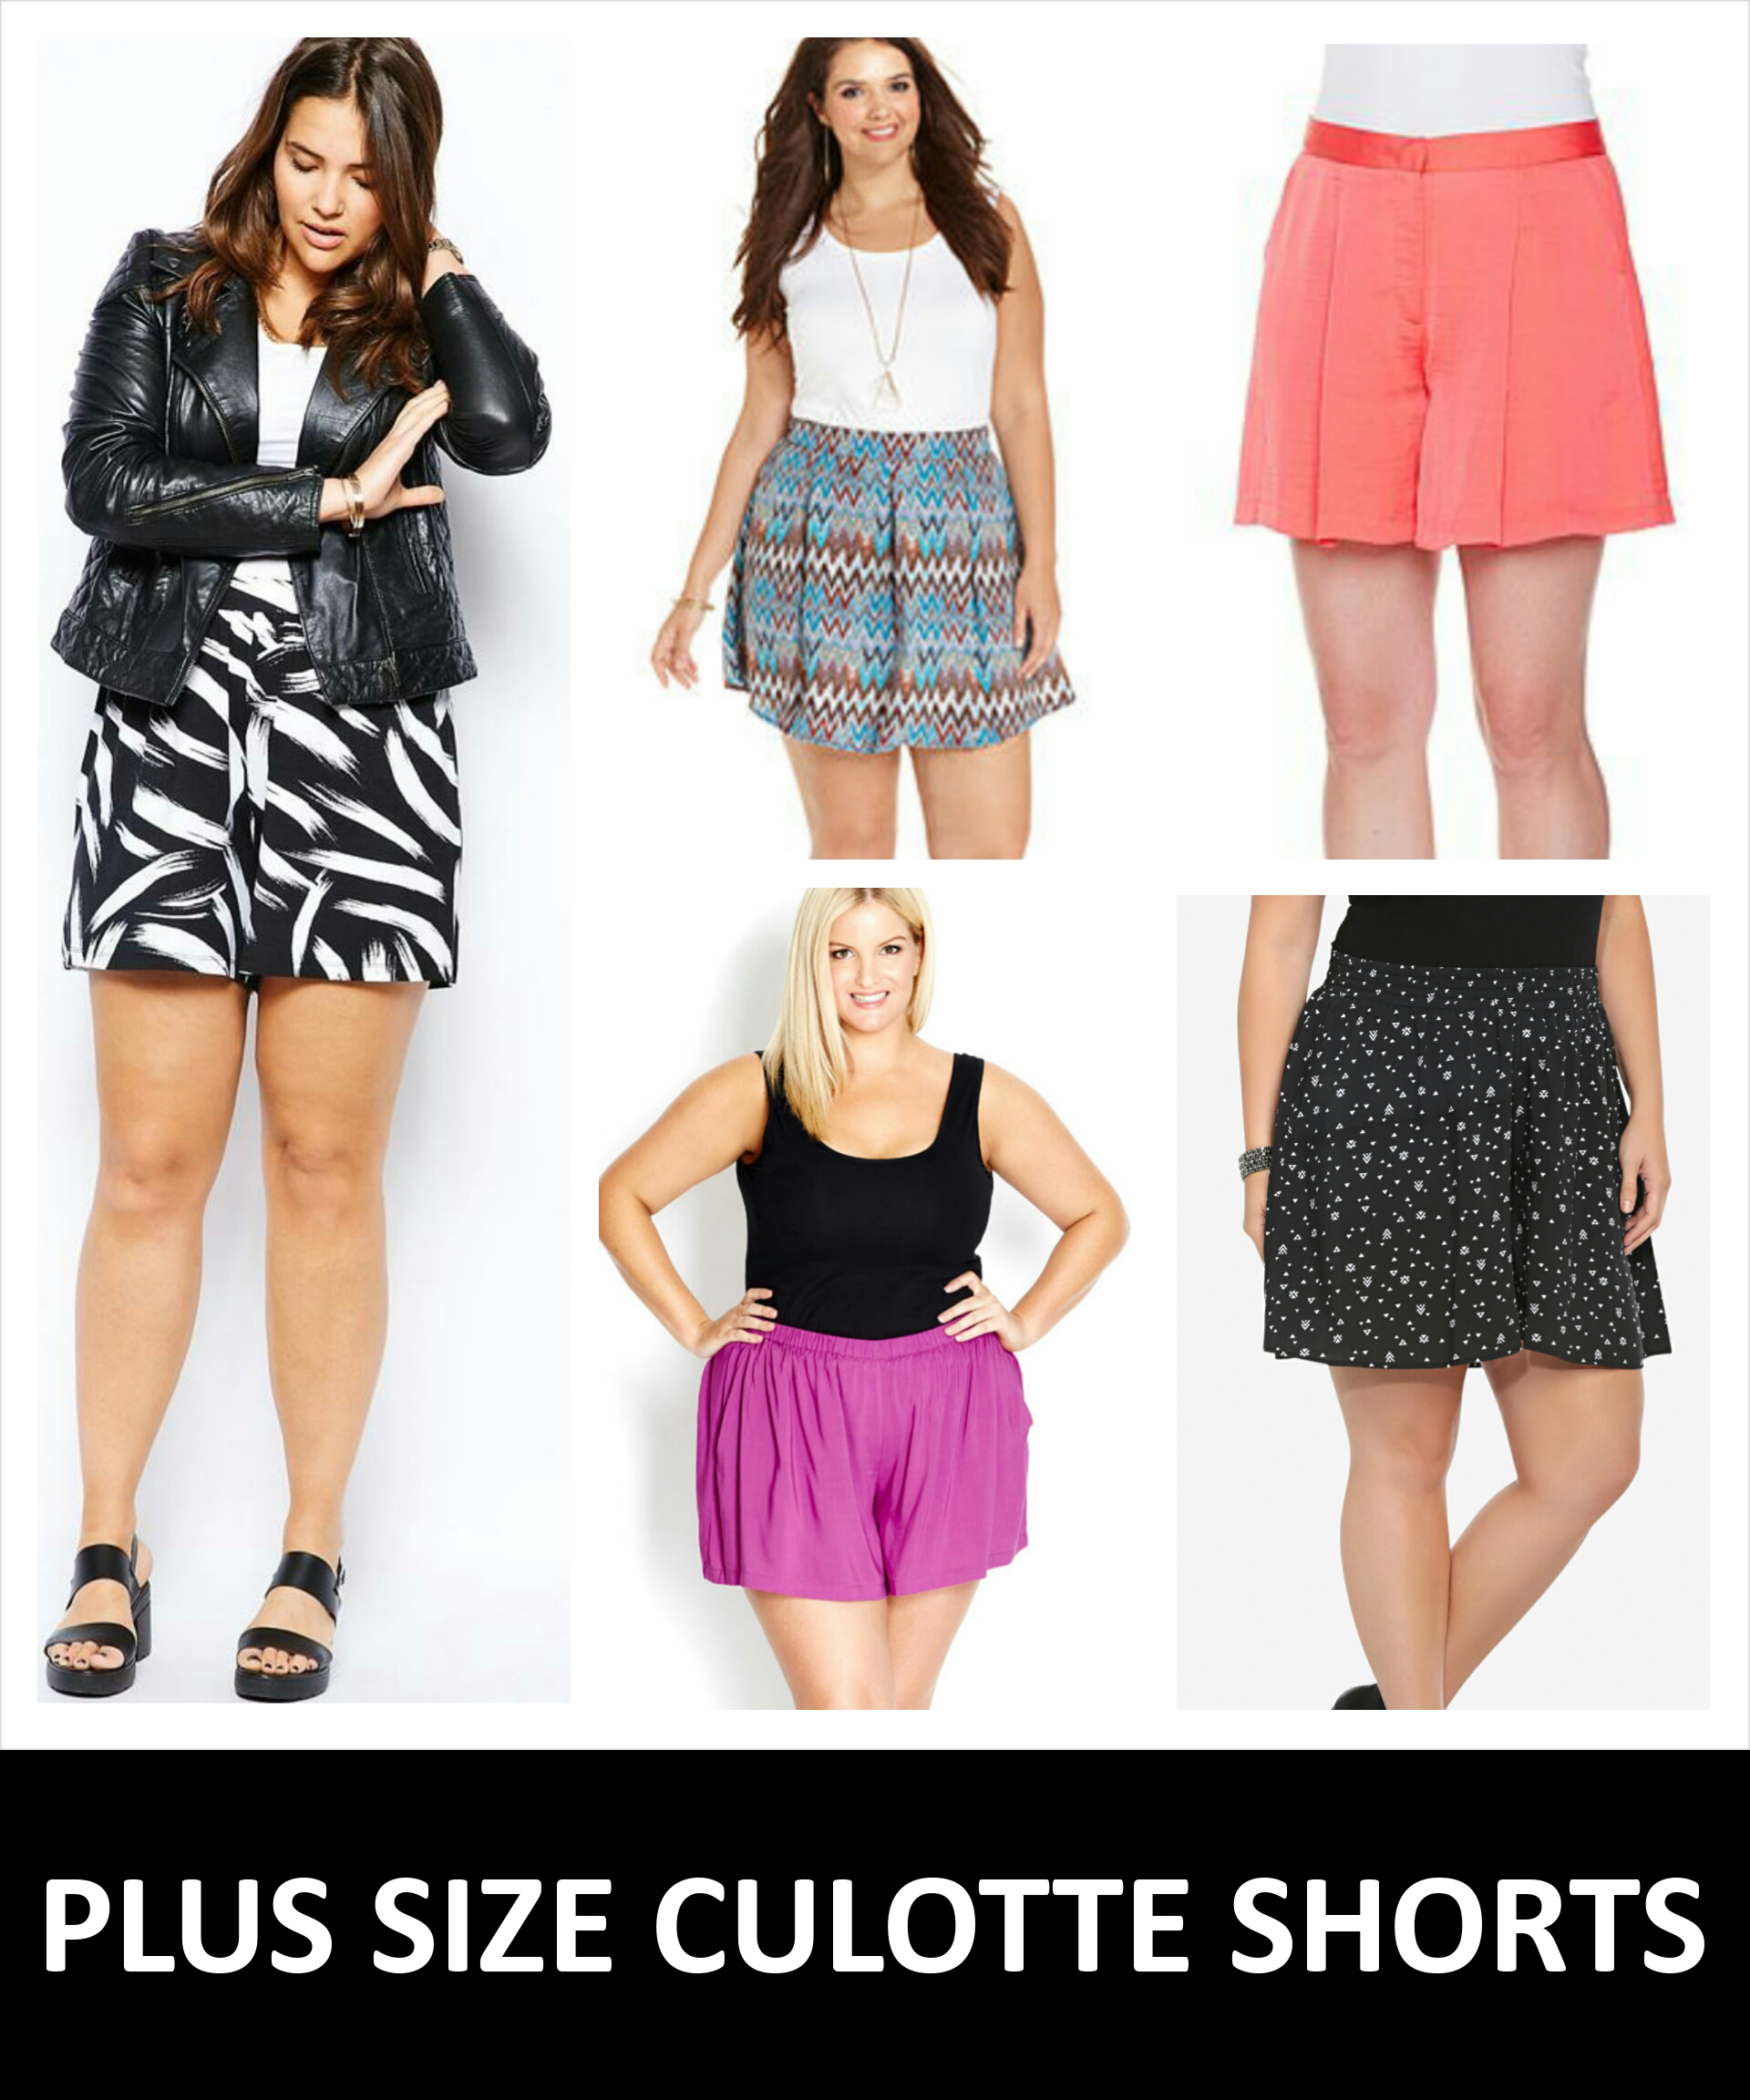 4860e95af77 5 REASONS WHY PLUS SIZE CULOTTE SHORTS ARE AWESOME